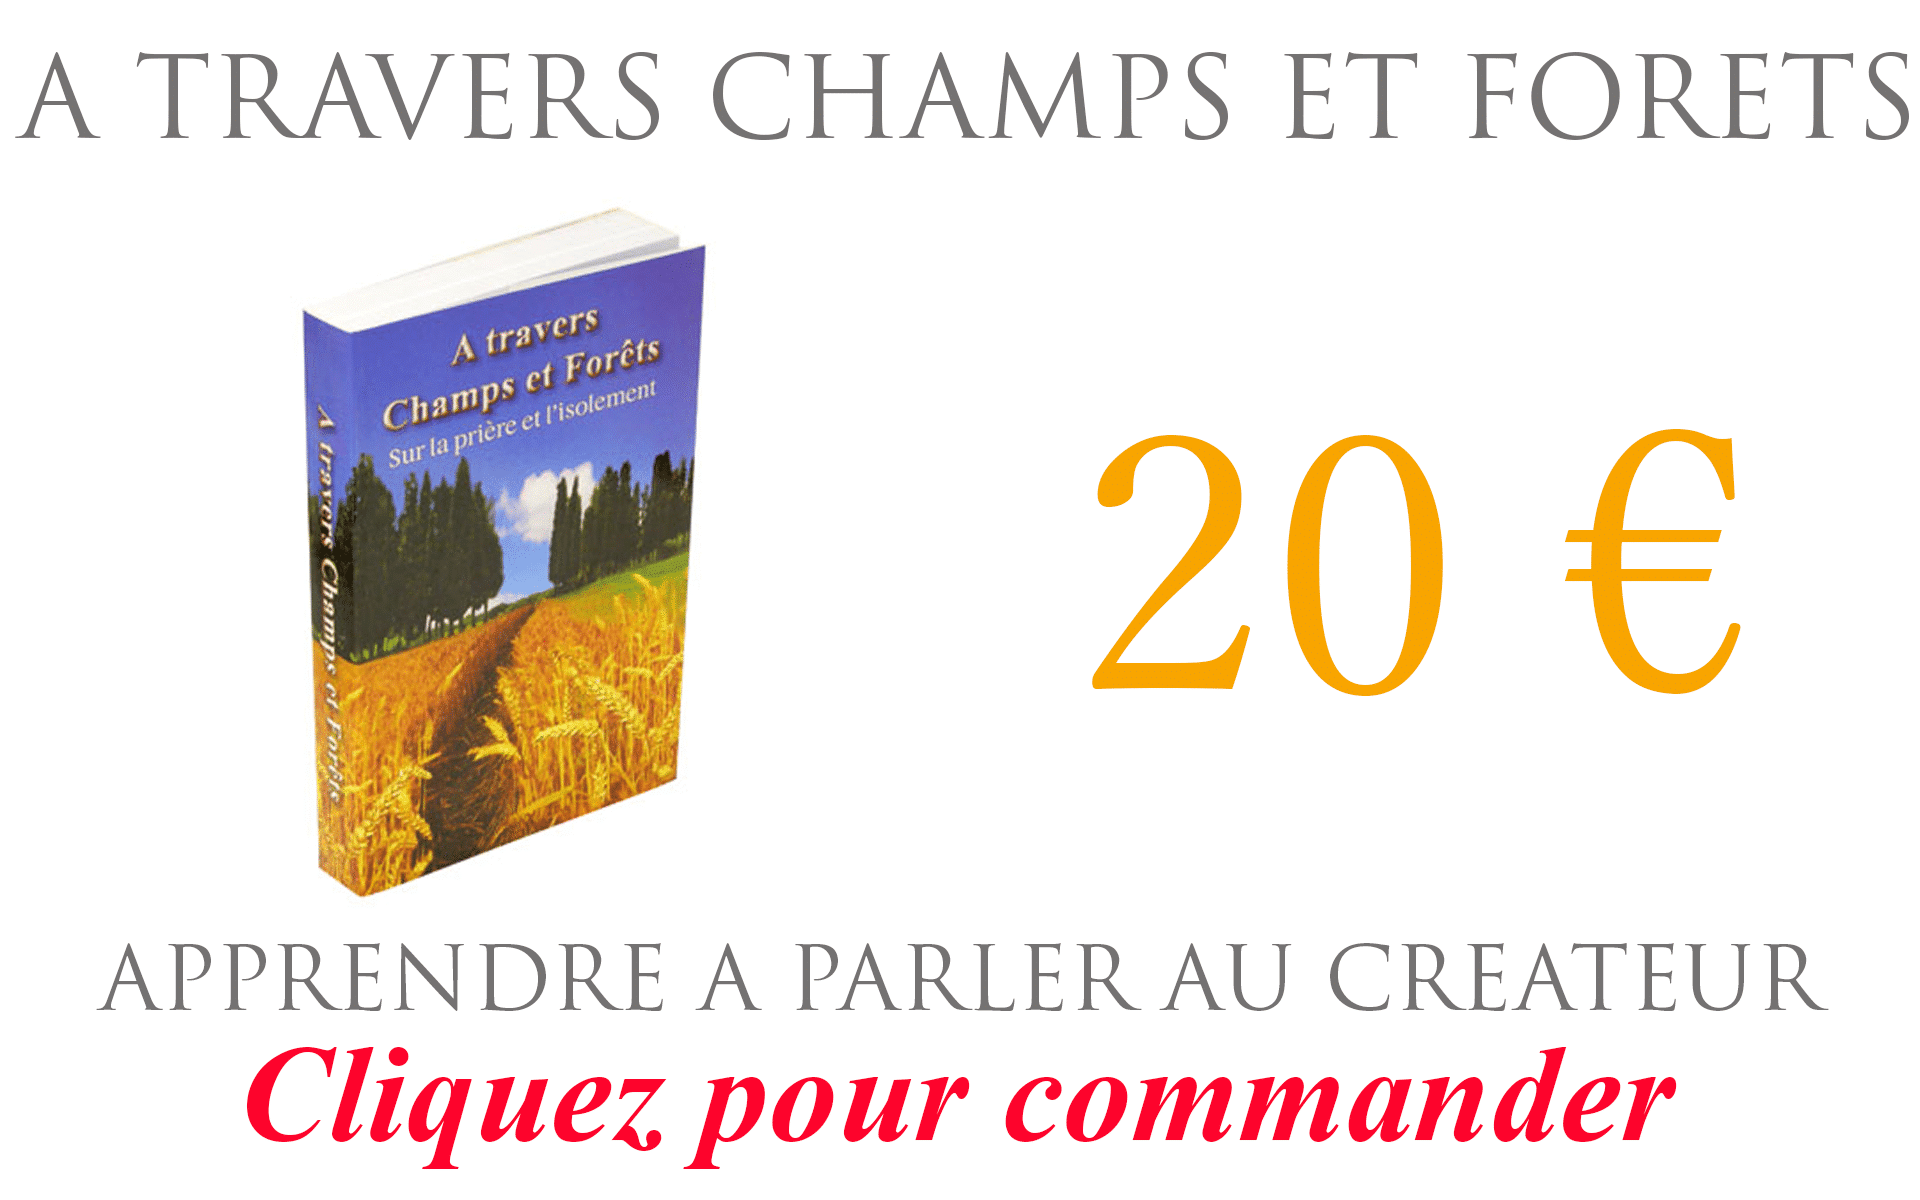 A TRAVERS champs et foret